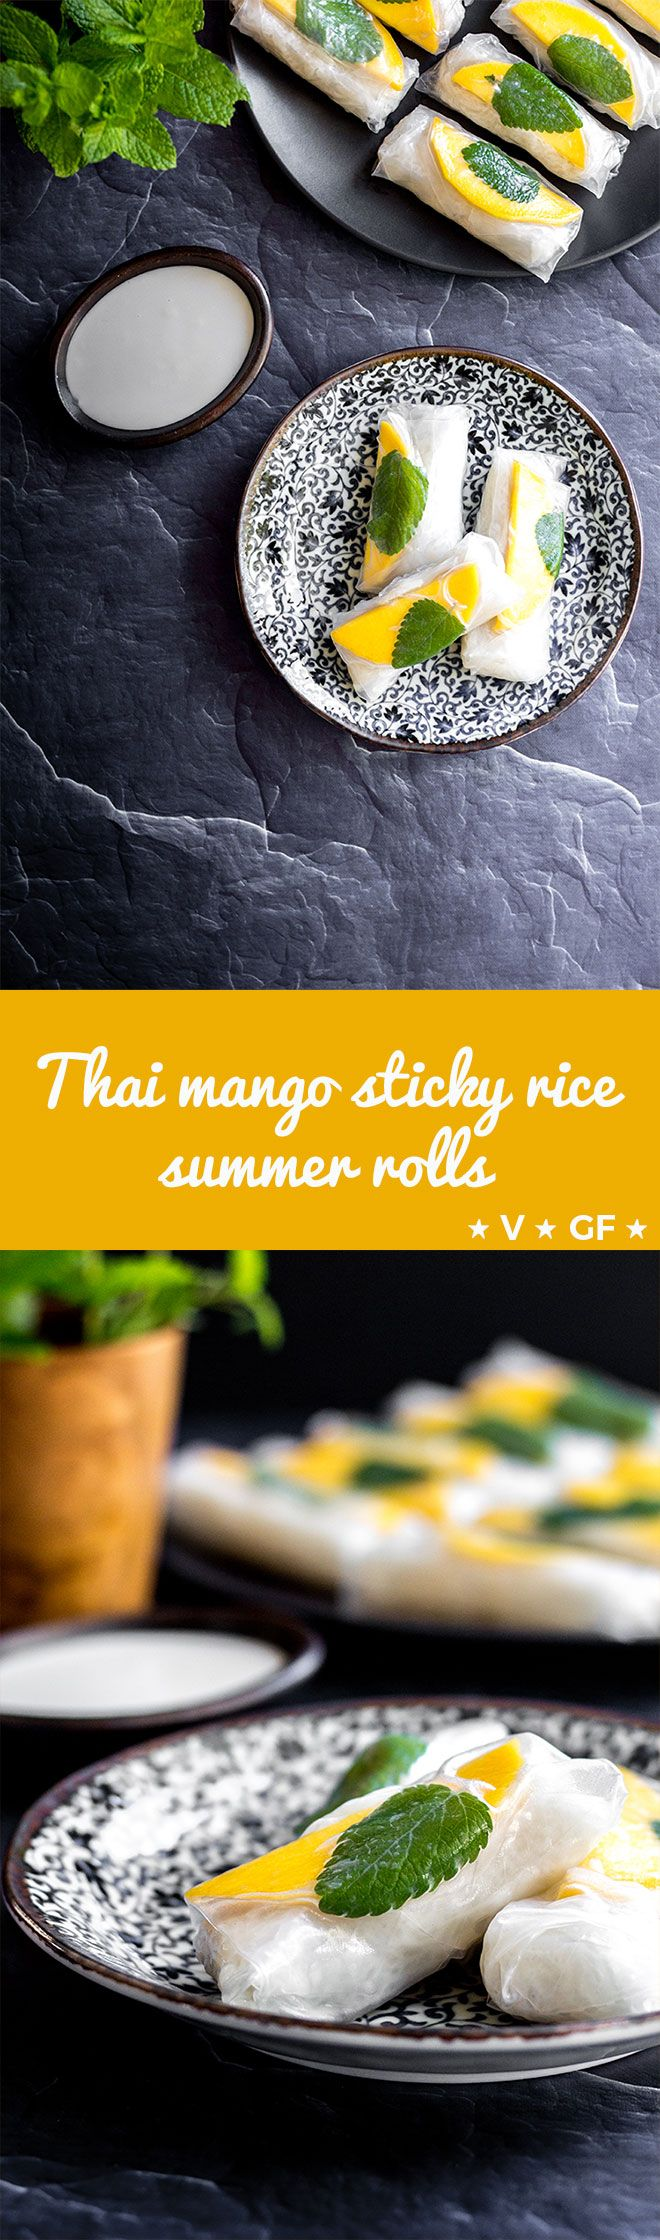 Thai-style coconut sticky rice in spring roll wrappers with juicy fresh mango and mint leaves - a light and refreshing dessert or sweet snack (gluten free and vegan). via @quitegoodfood